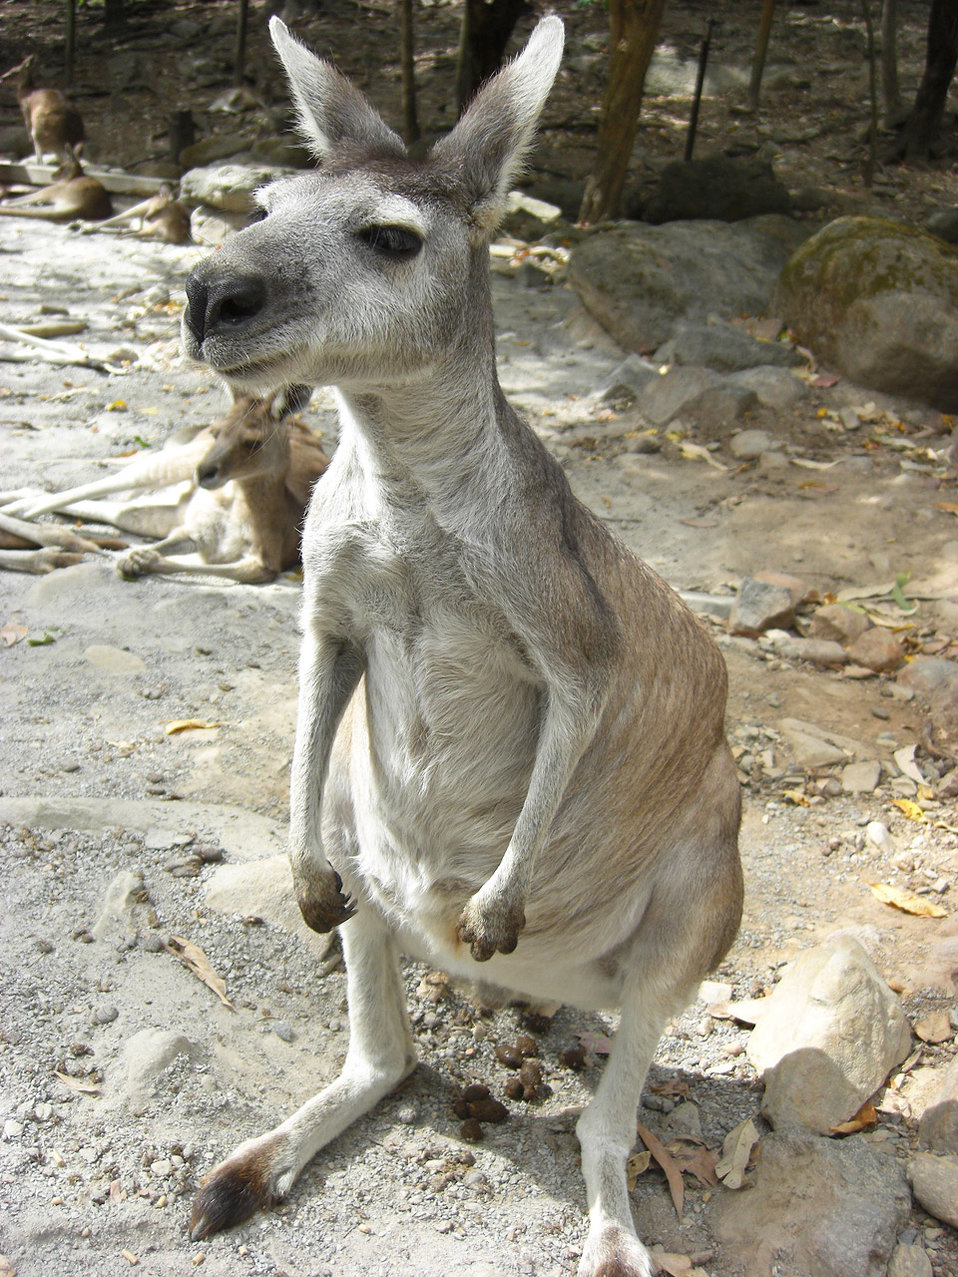 Kangaroo at zoo